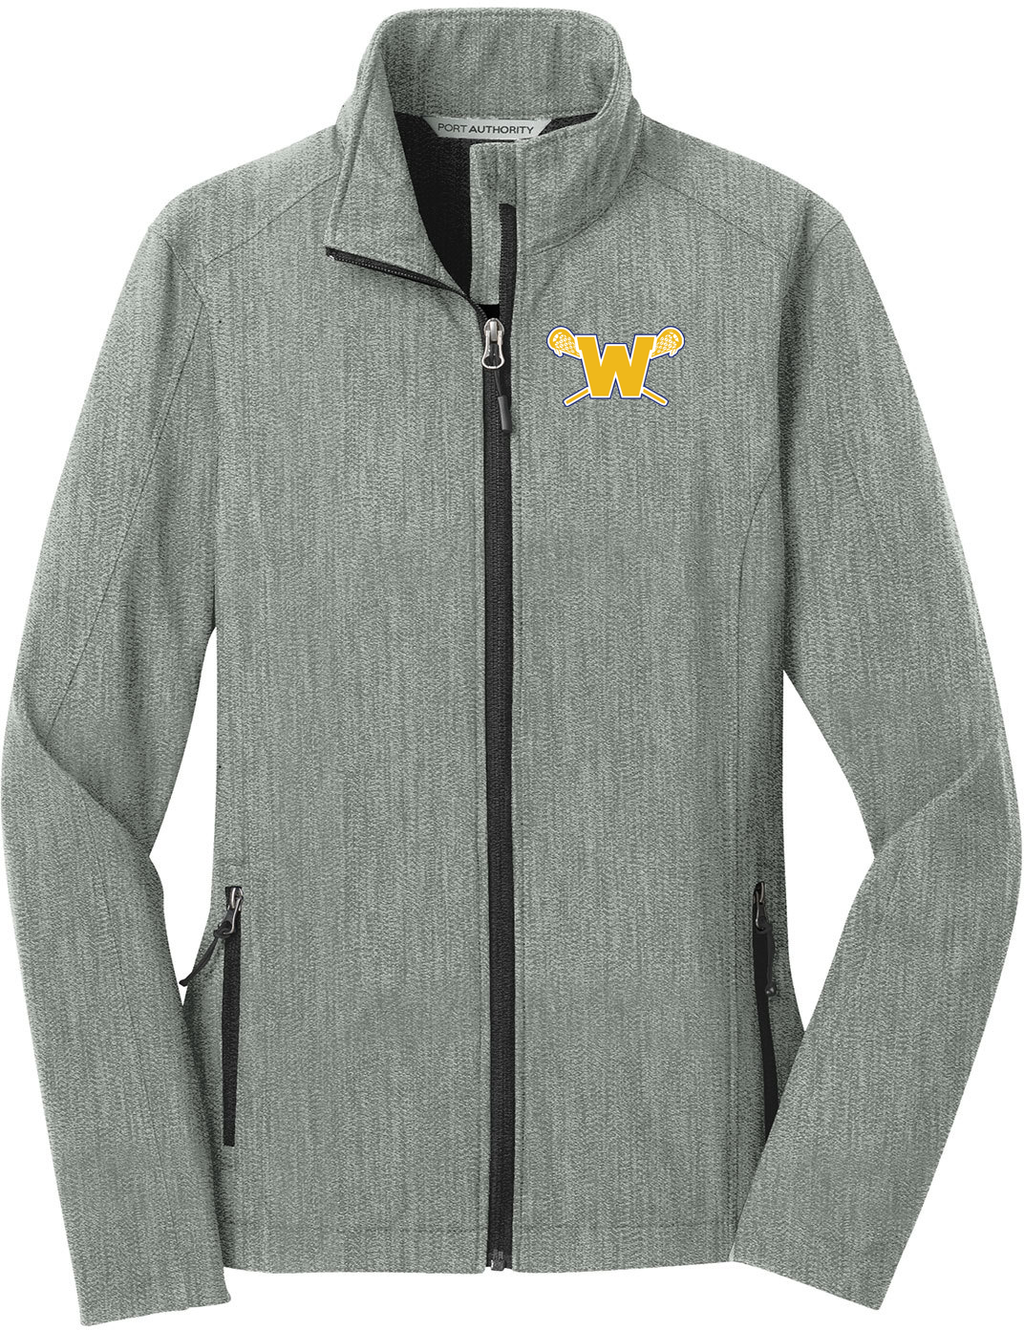 Webster Lacrosse Pearl Grey Women's Soft Shell Jacket